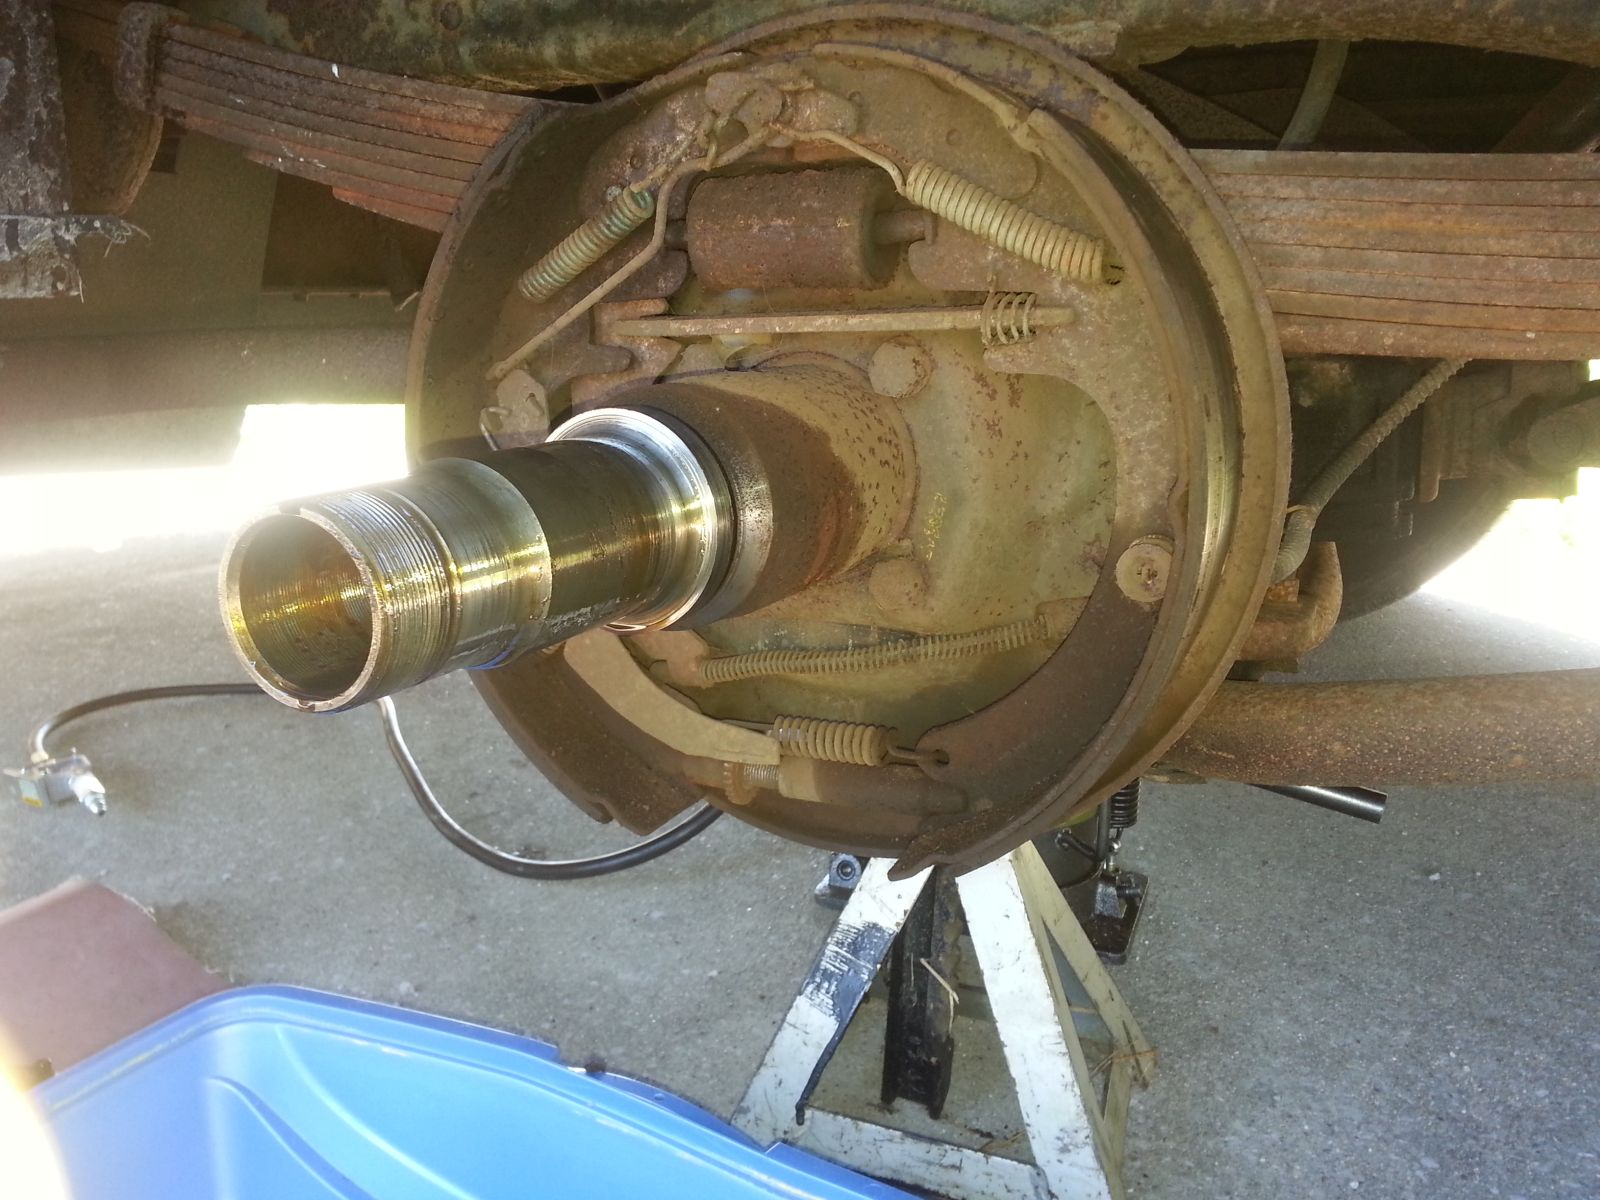 Click image for larger version  Name:peanut-oil-on-brake-shoes.jpg Views:58 Size:265.8 KB ID:259913